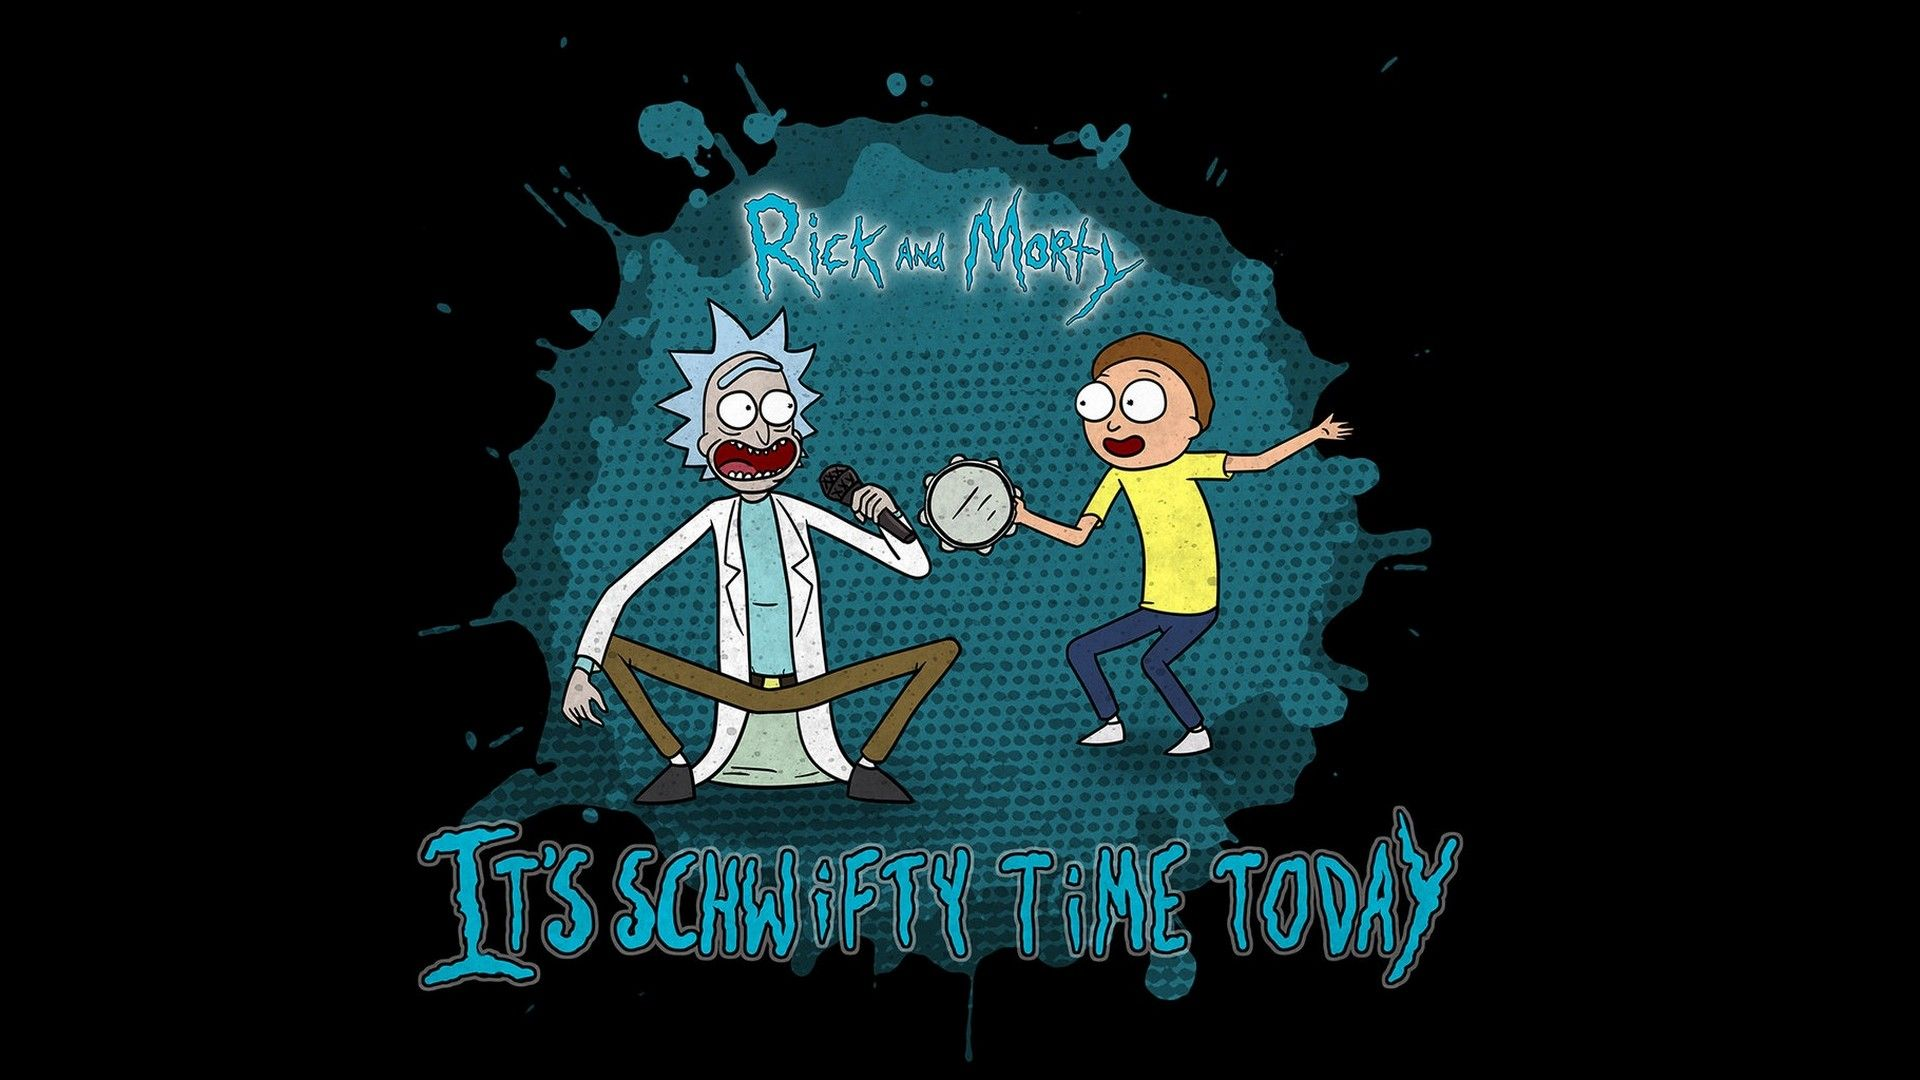 Download Trippy Rick And Morty Wallpaper Top Free Awesome Backgrounds In 2020 Trippy Rick And Morty Cool Wallpapers For Phones Rick And Morty